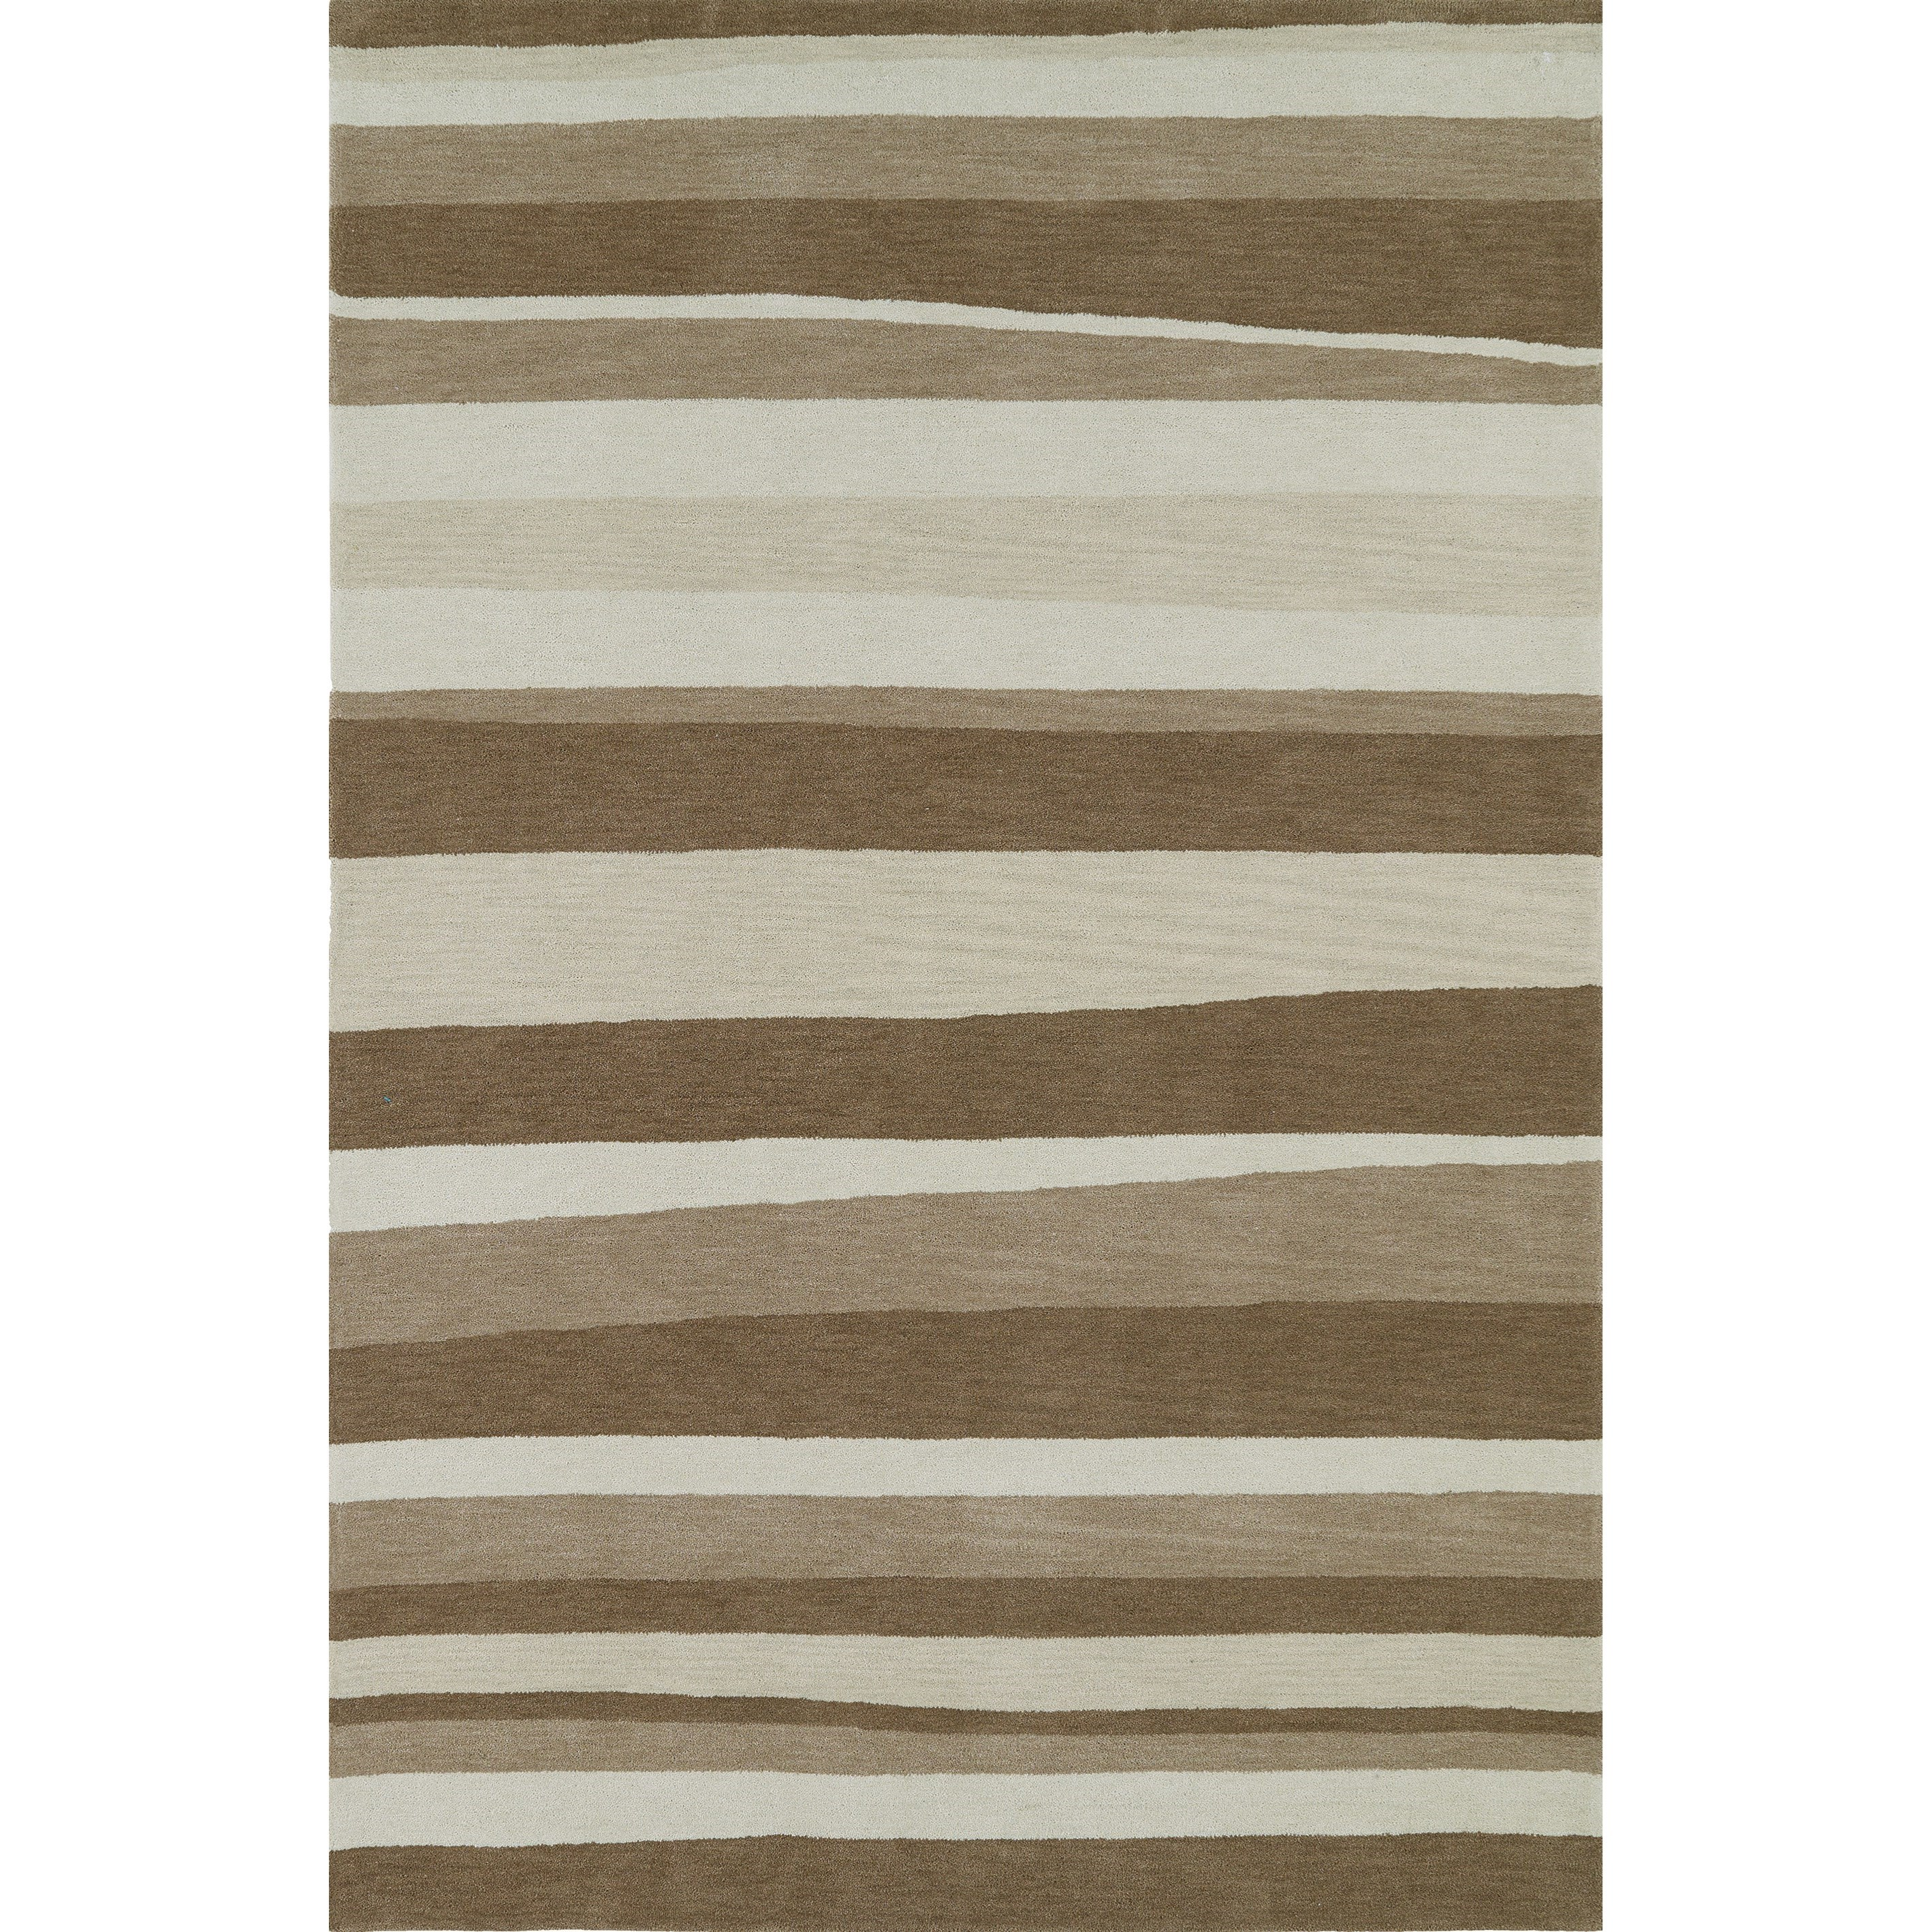 Aloft Taupe 8'X10' Rug by Dalyn at Fashion Furniture